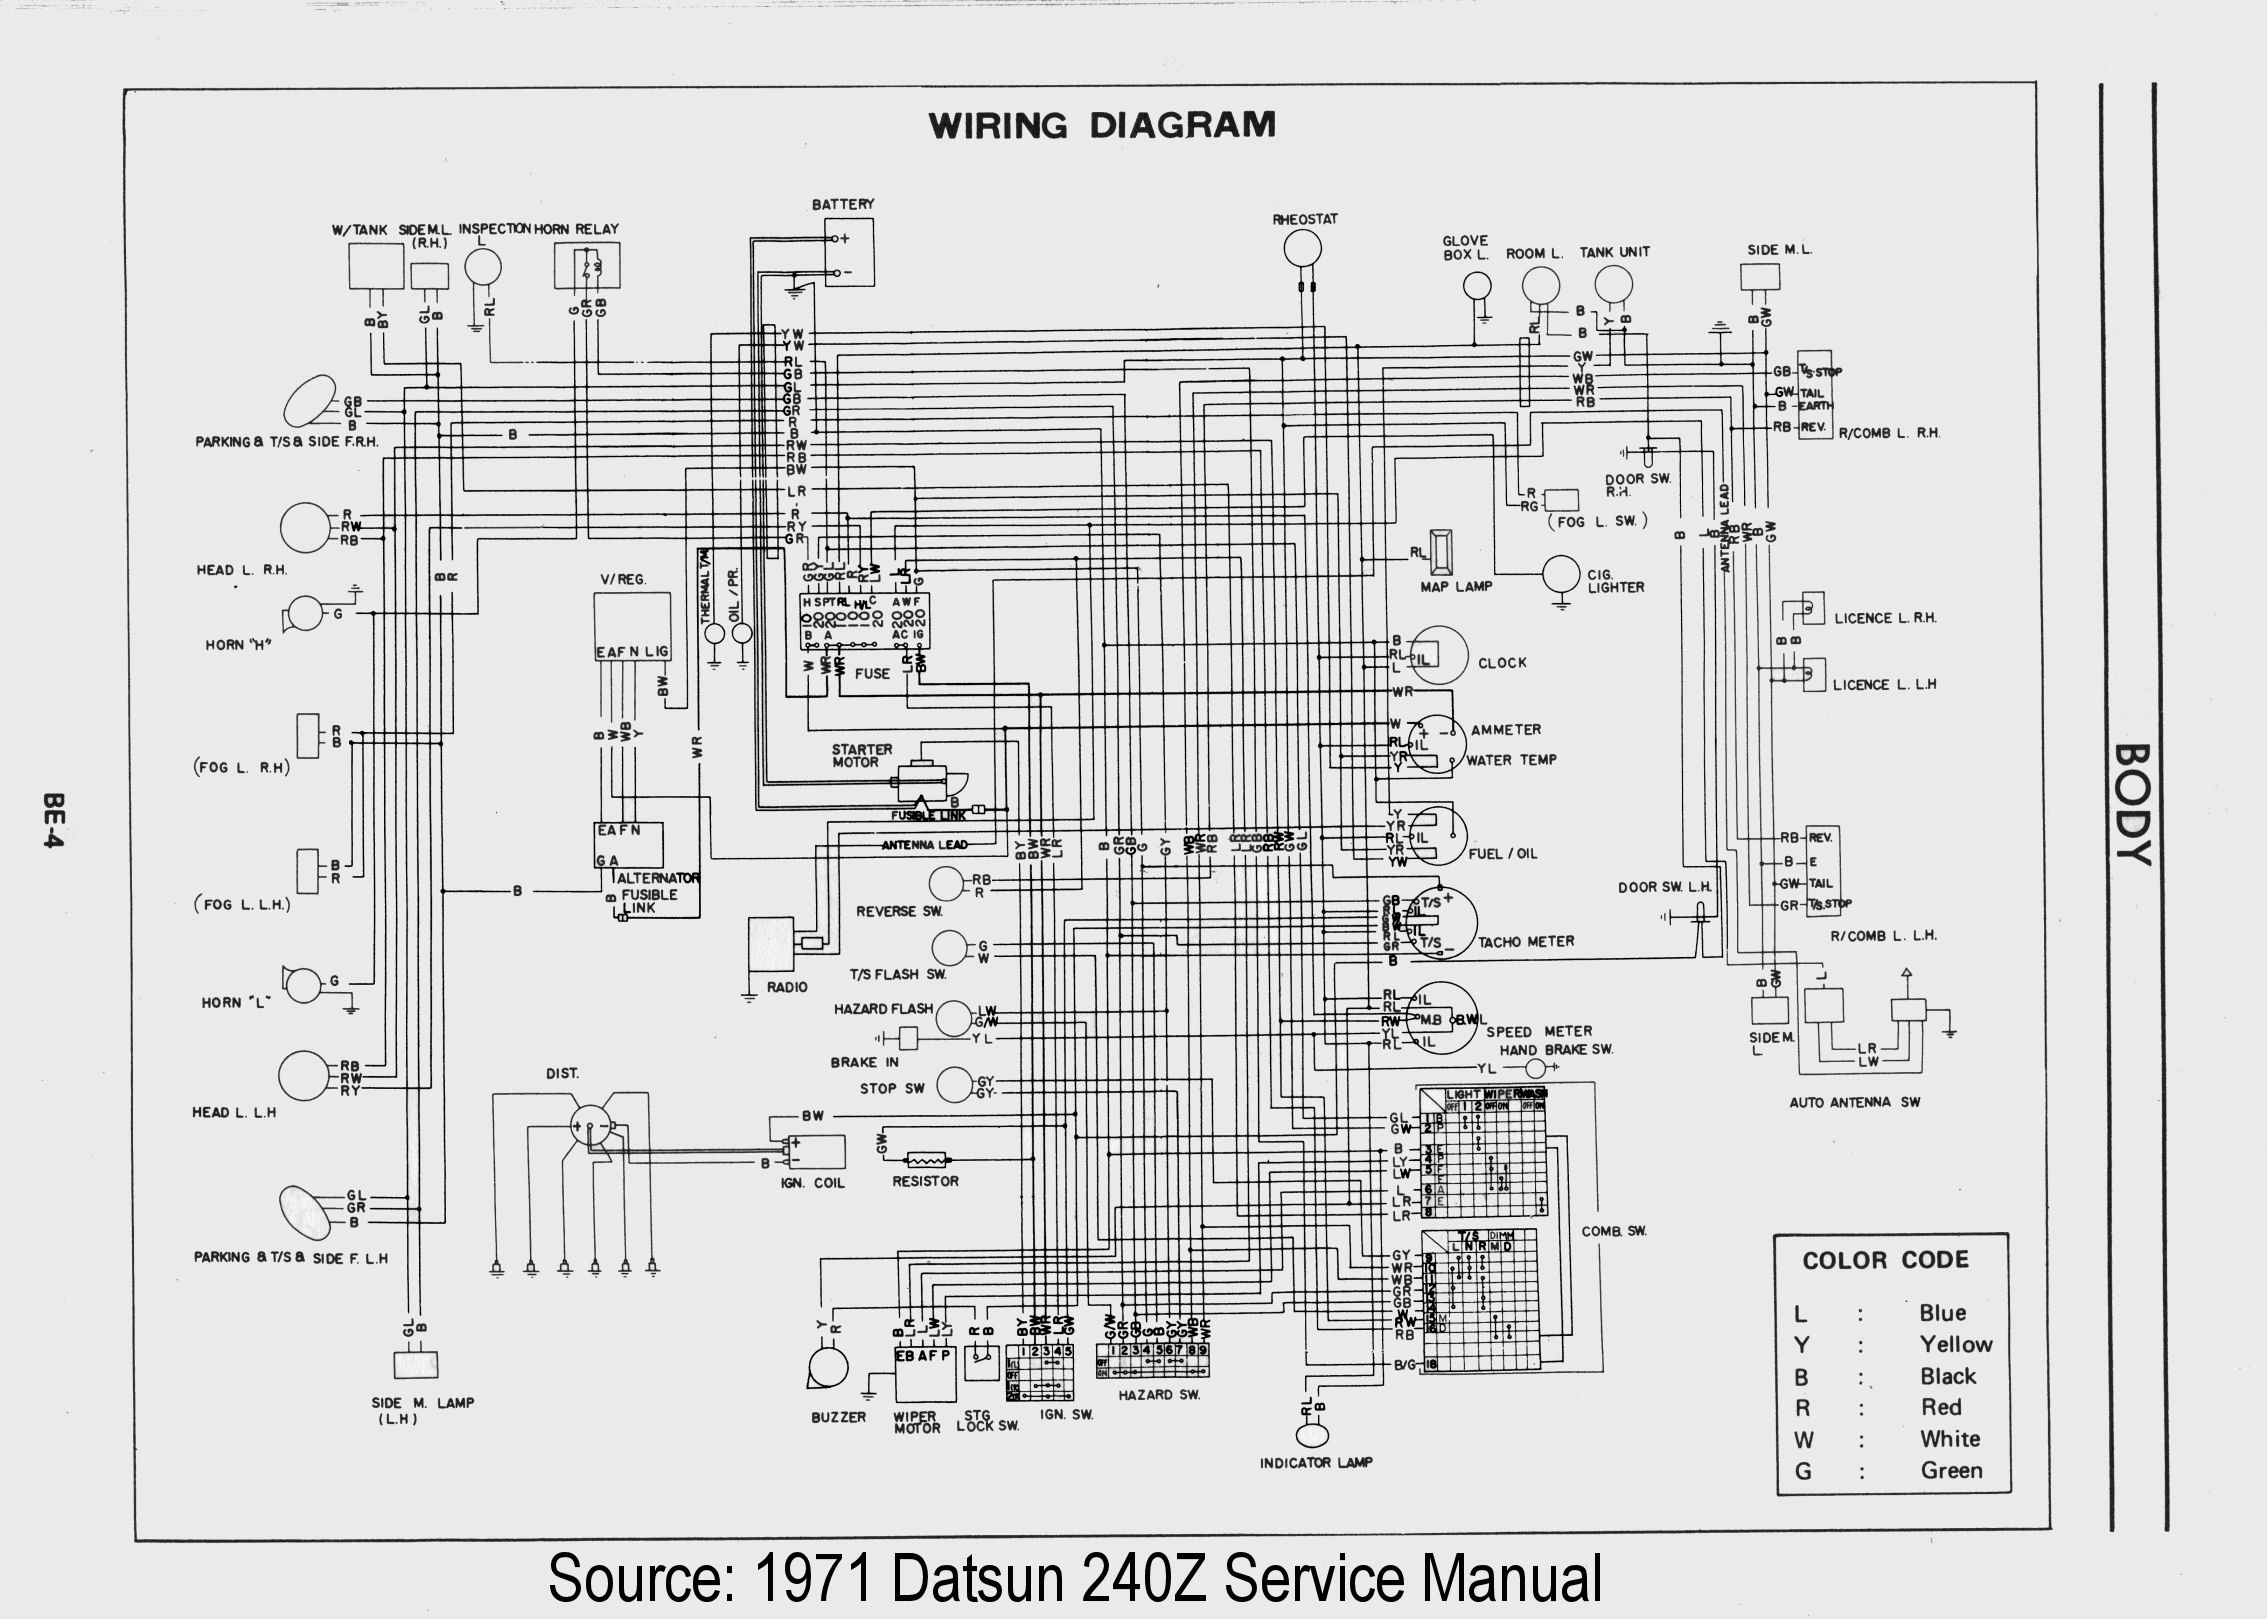 Wiring Diagram HiRes 2 1977 datsun 280z wiring diagram fuel pump relay wiring diagram 1978 datsun 280z wiring diagram at soozxer.org